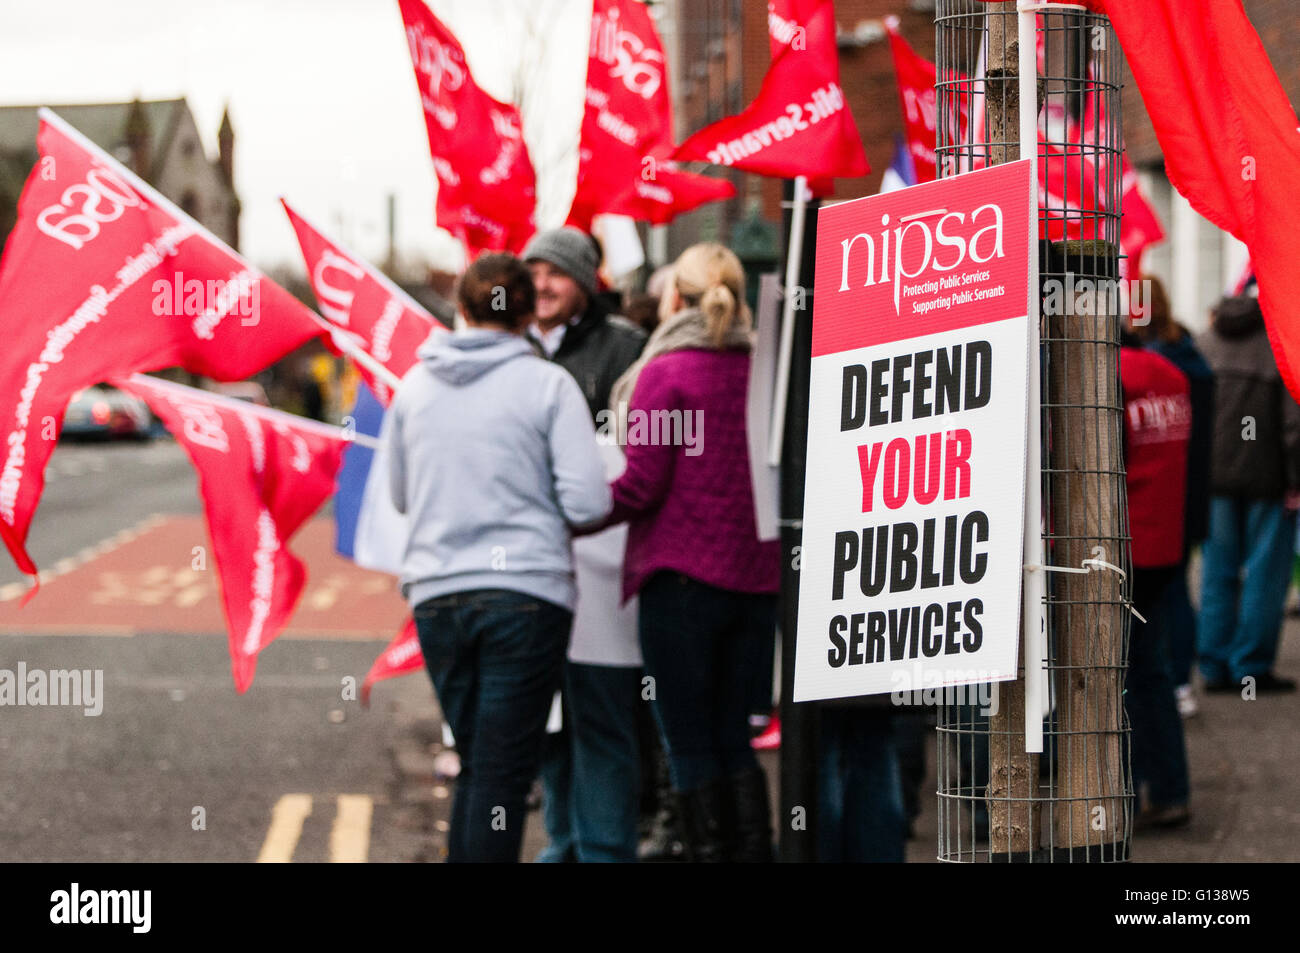 Belfast, Northern Ireland. 20 Nov 2011 - NIPSA placard saying 'Defend your Public Services' at a picket - Stock Image